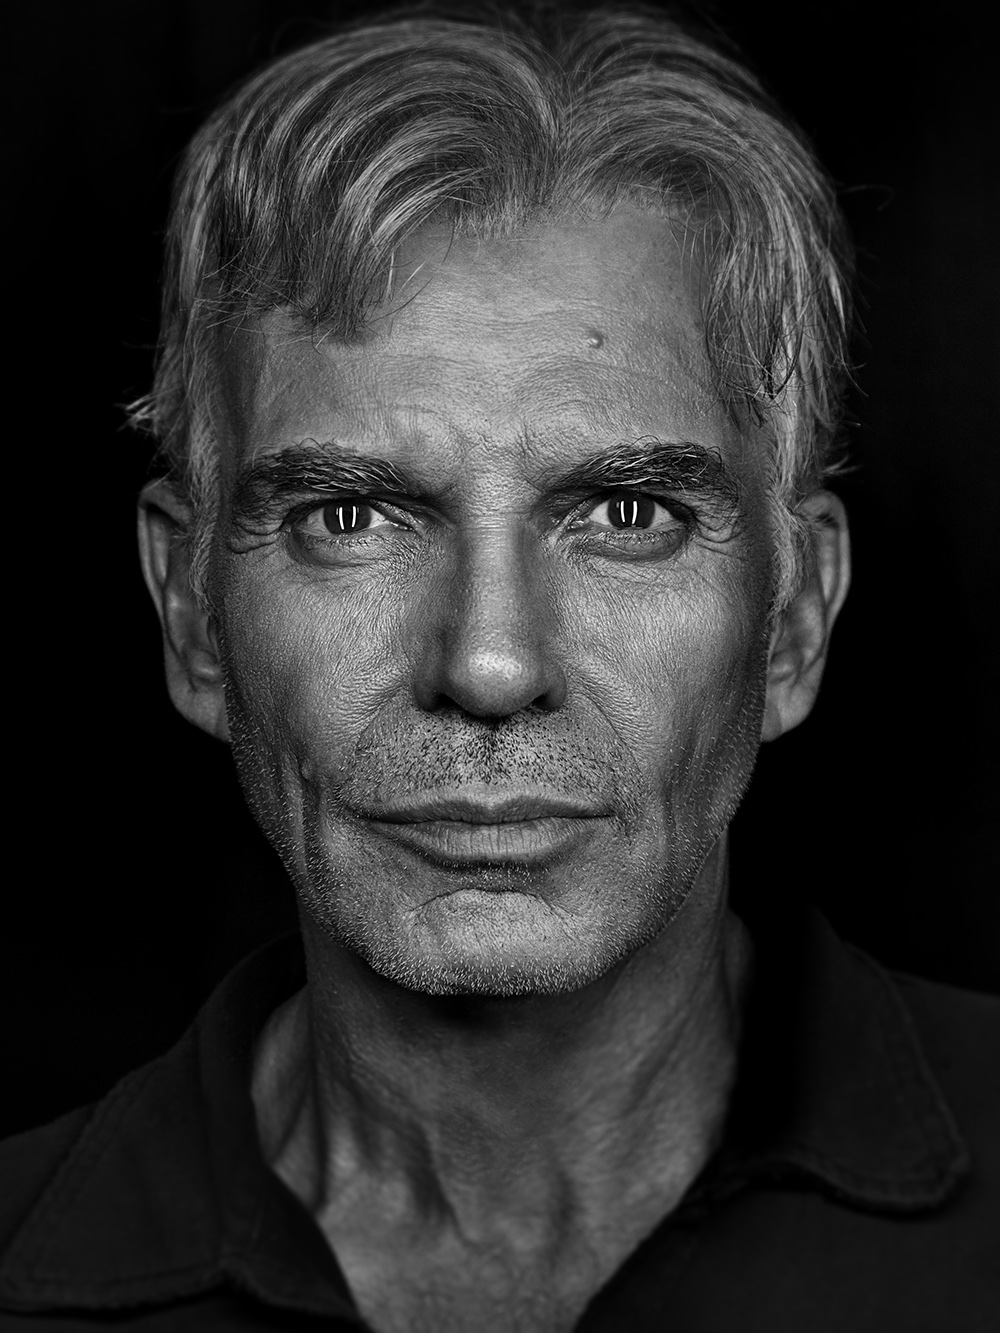 Billy Bob Thornton - A candid conversation with america's weirdest actor about life with (and without) angelina jolie, his nightmarish fears and the upside of having five failed marriages — may 2003